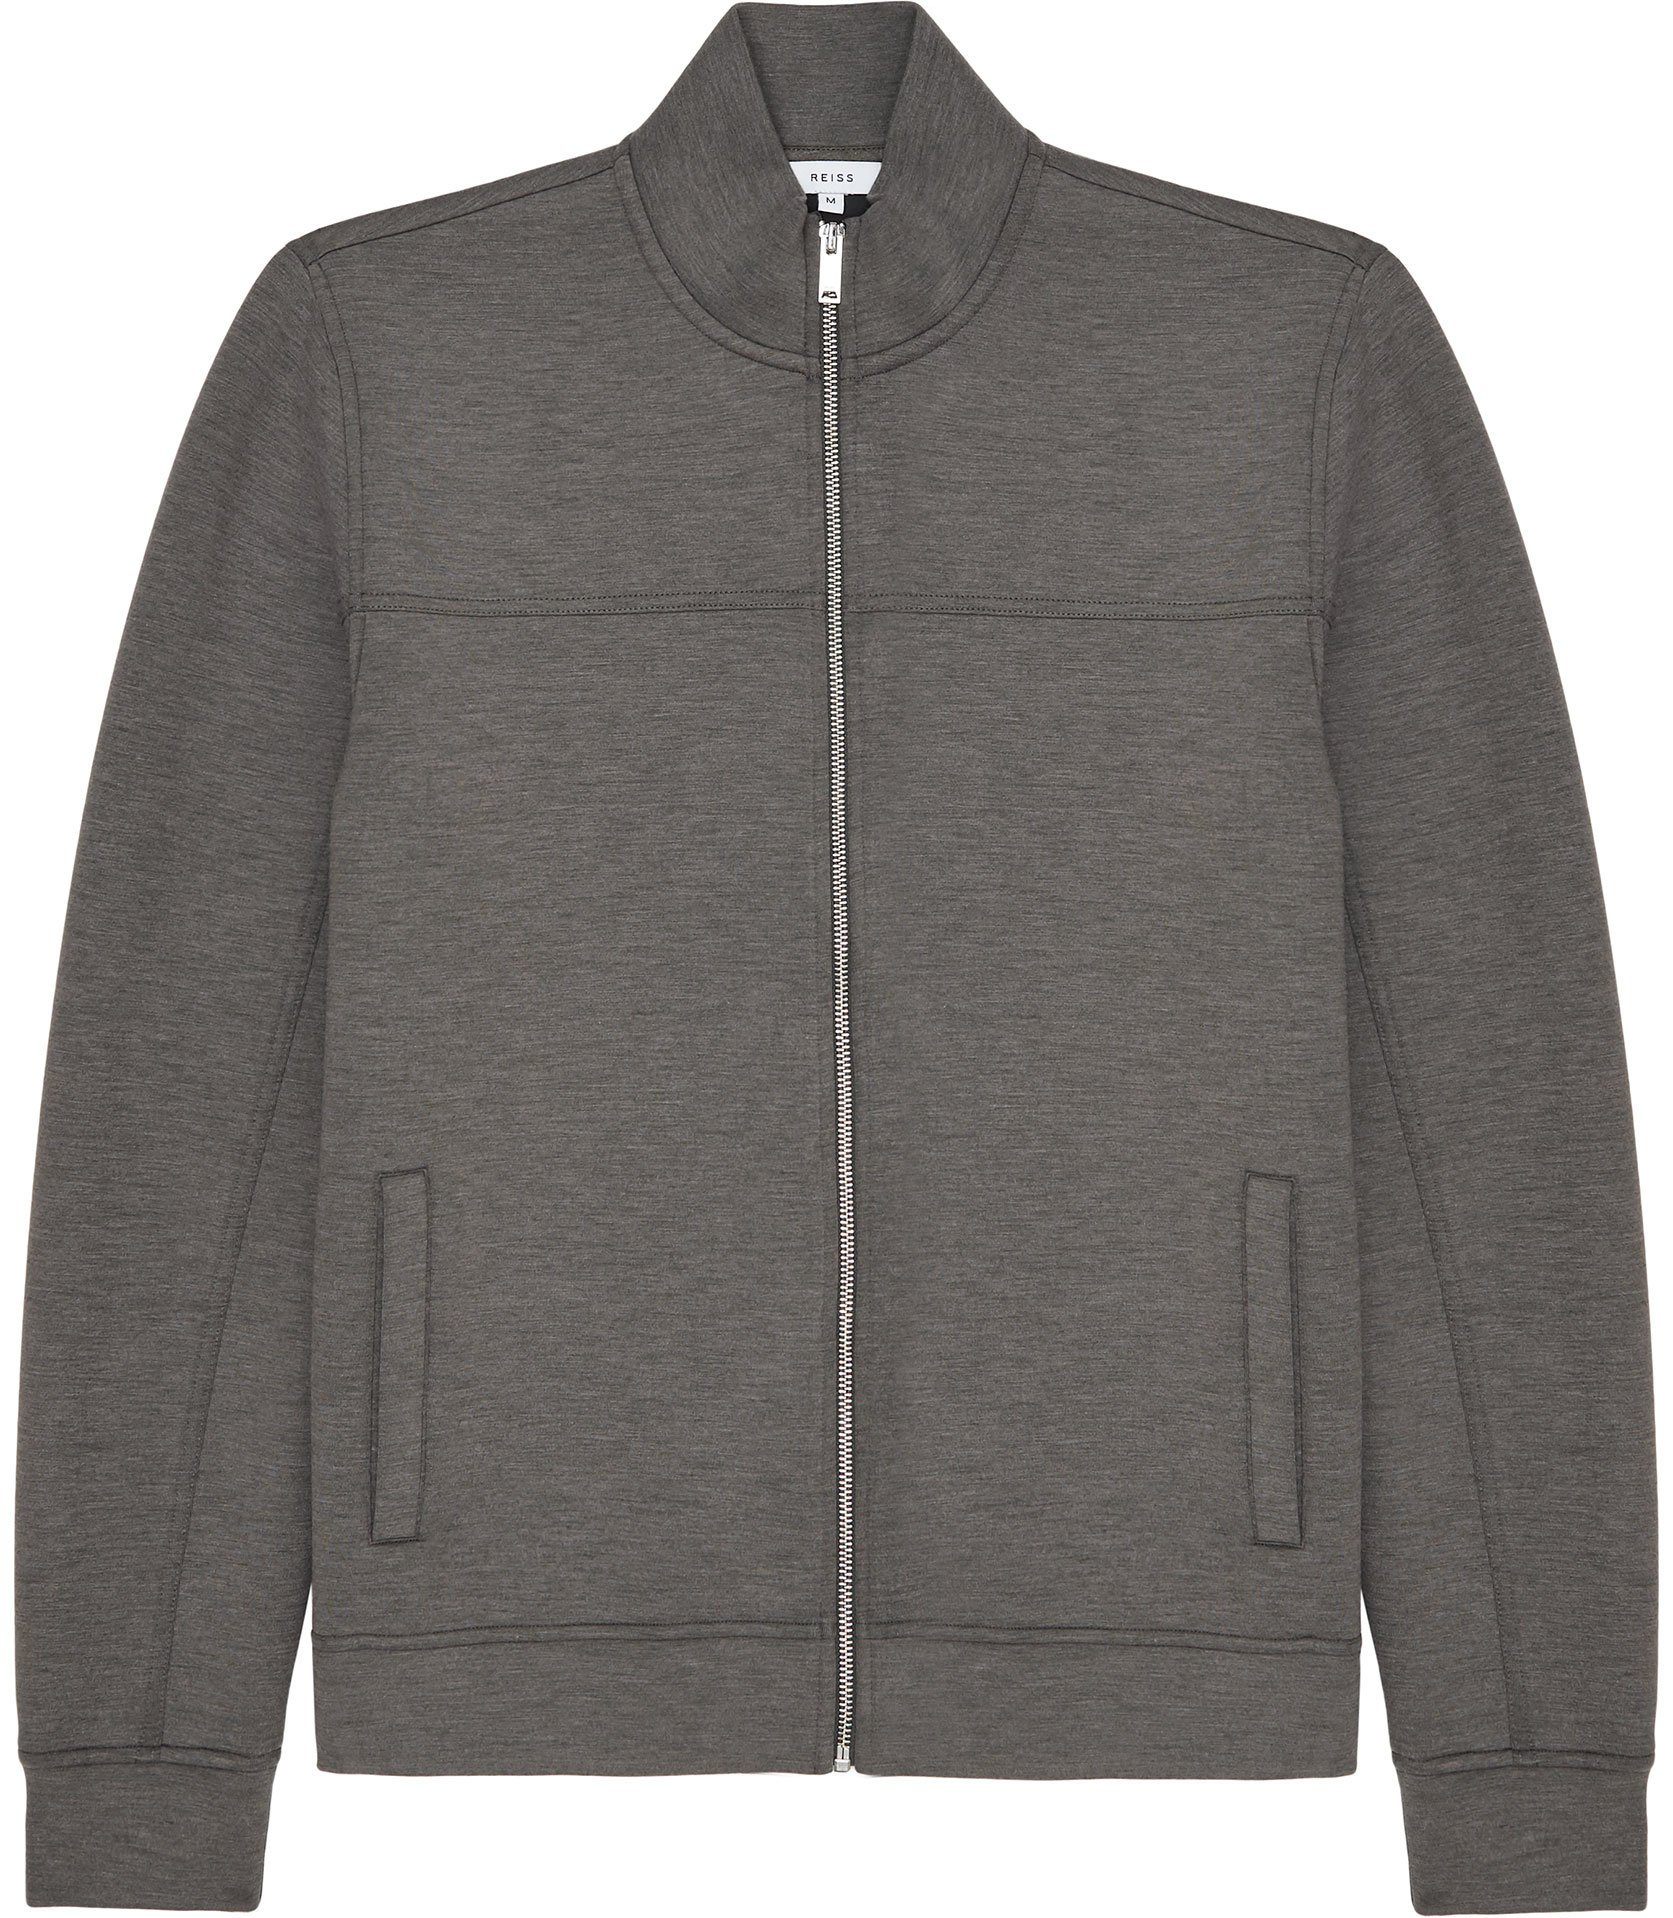 Reiss jumper - £110 - Sports luxe - which basically means you can wear this beauty anywhere